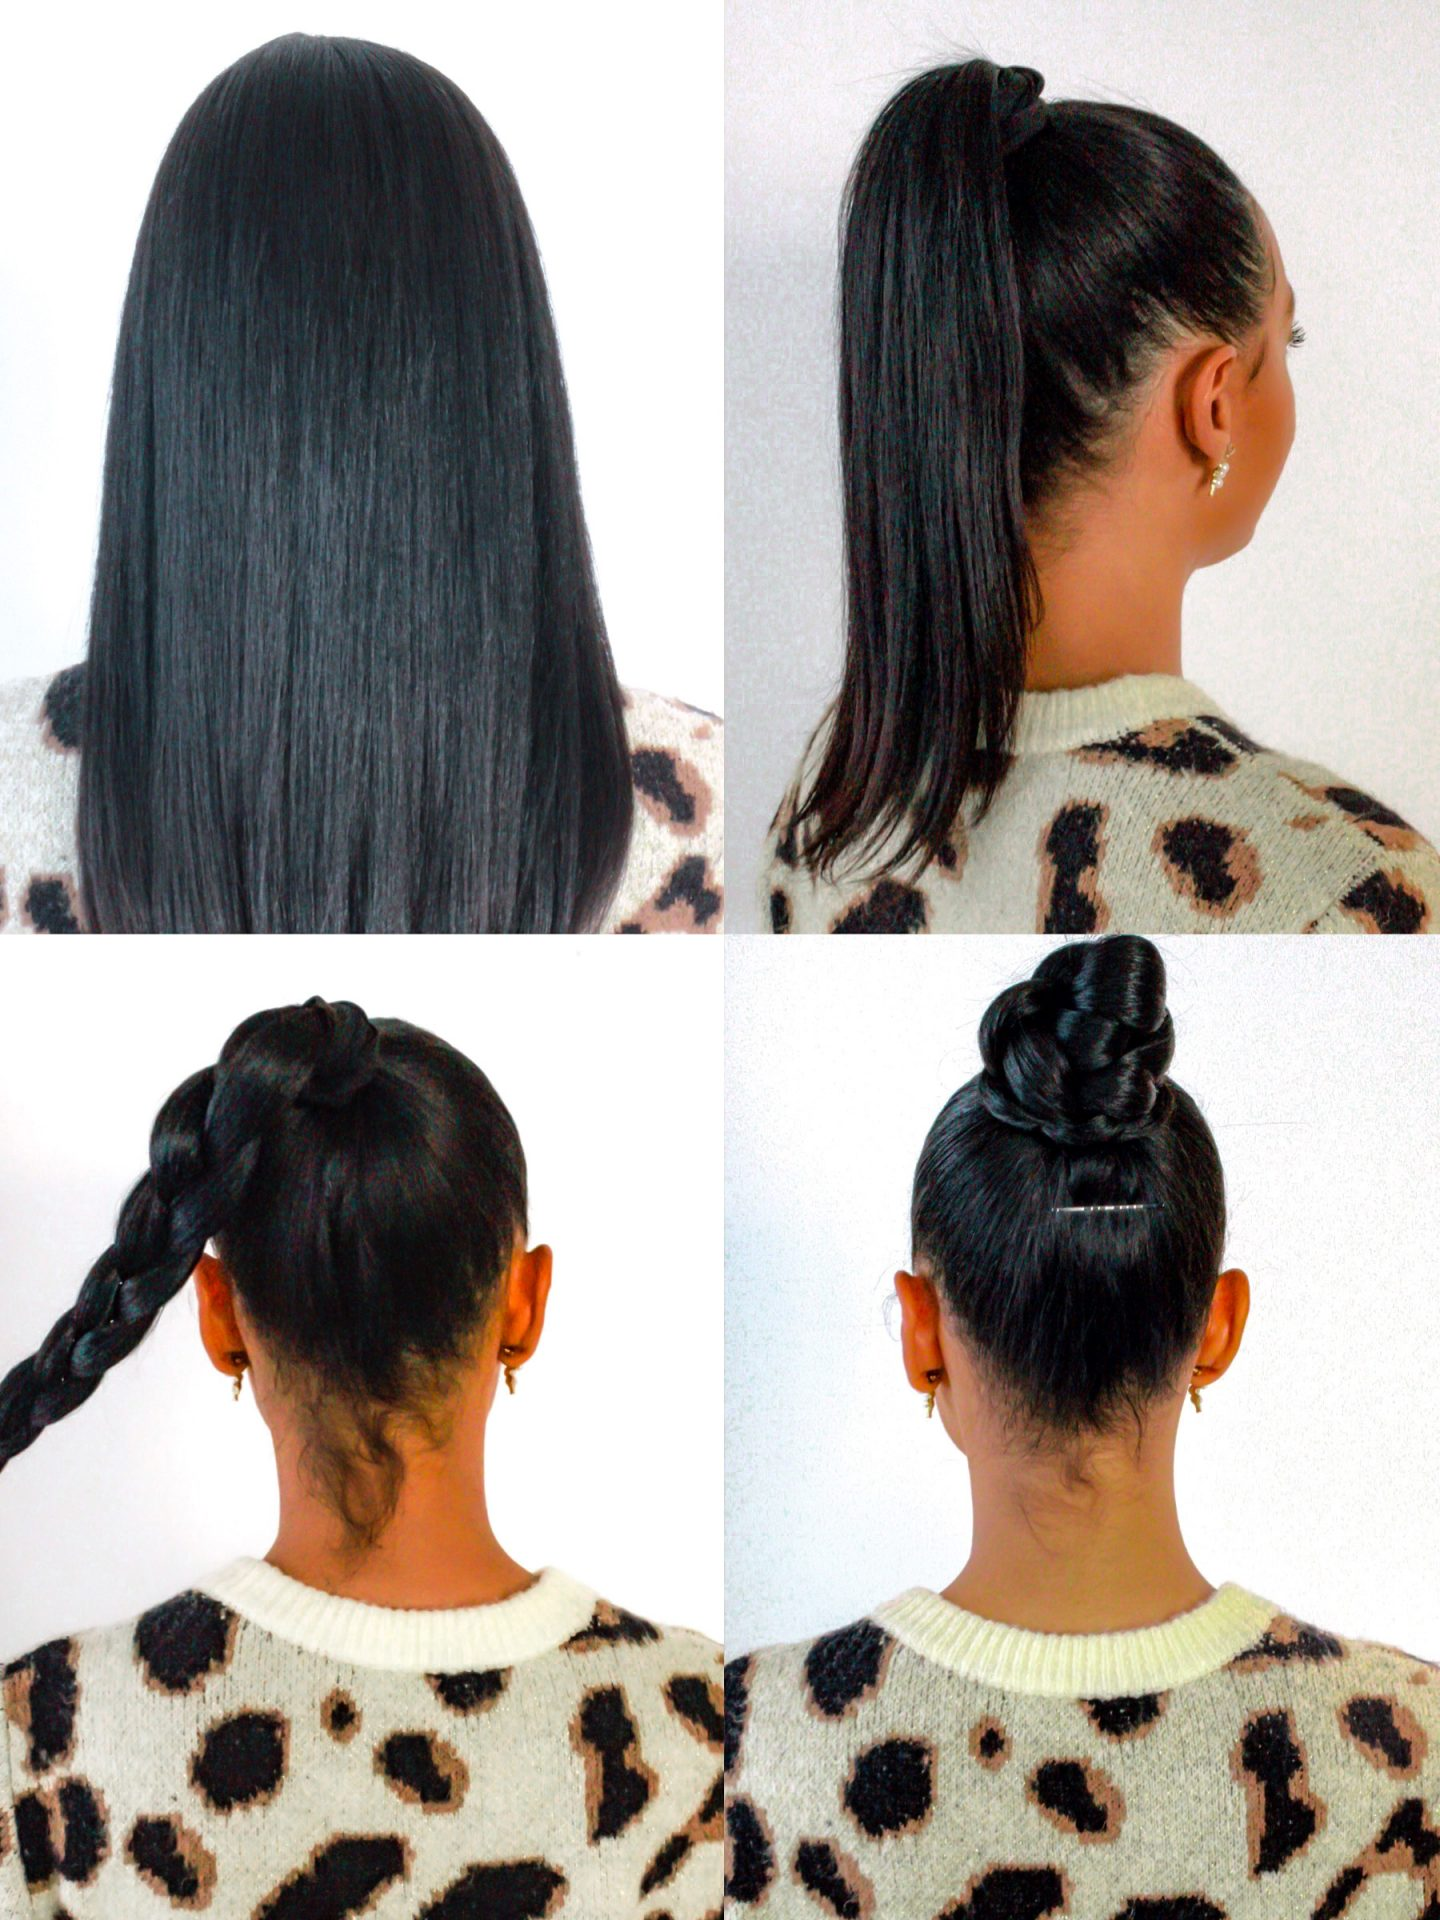 top knot hair style steps